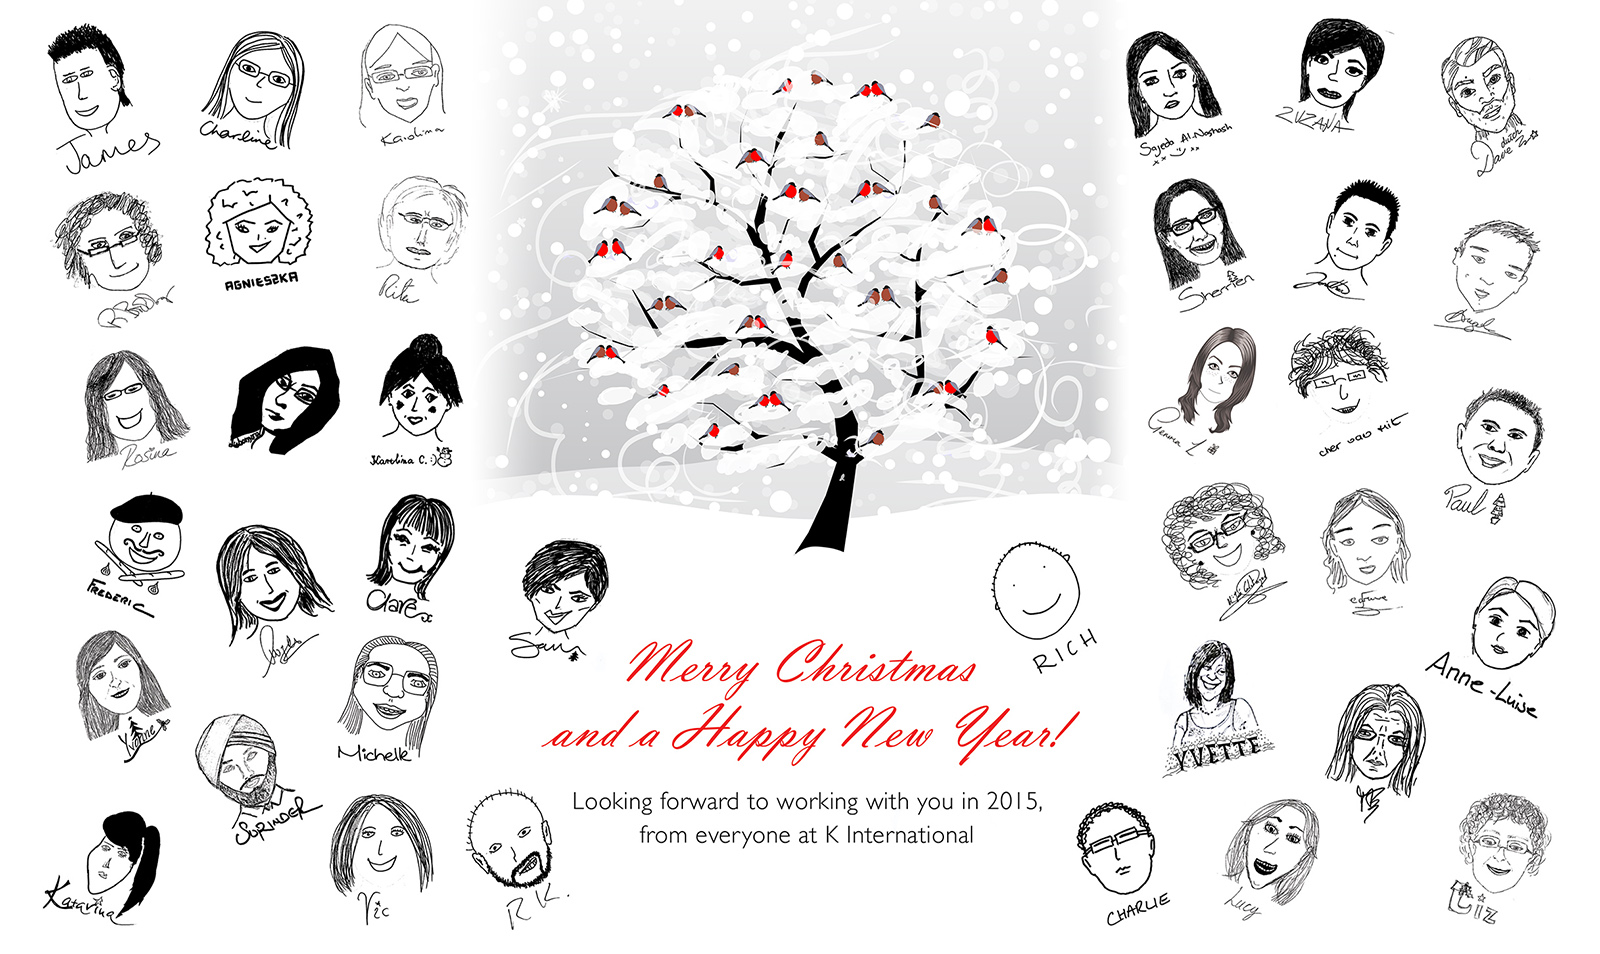 K International wish everyone we've worked with in 2014 a very Merry Christmas